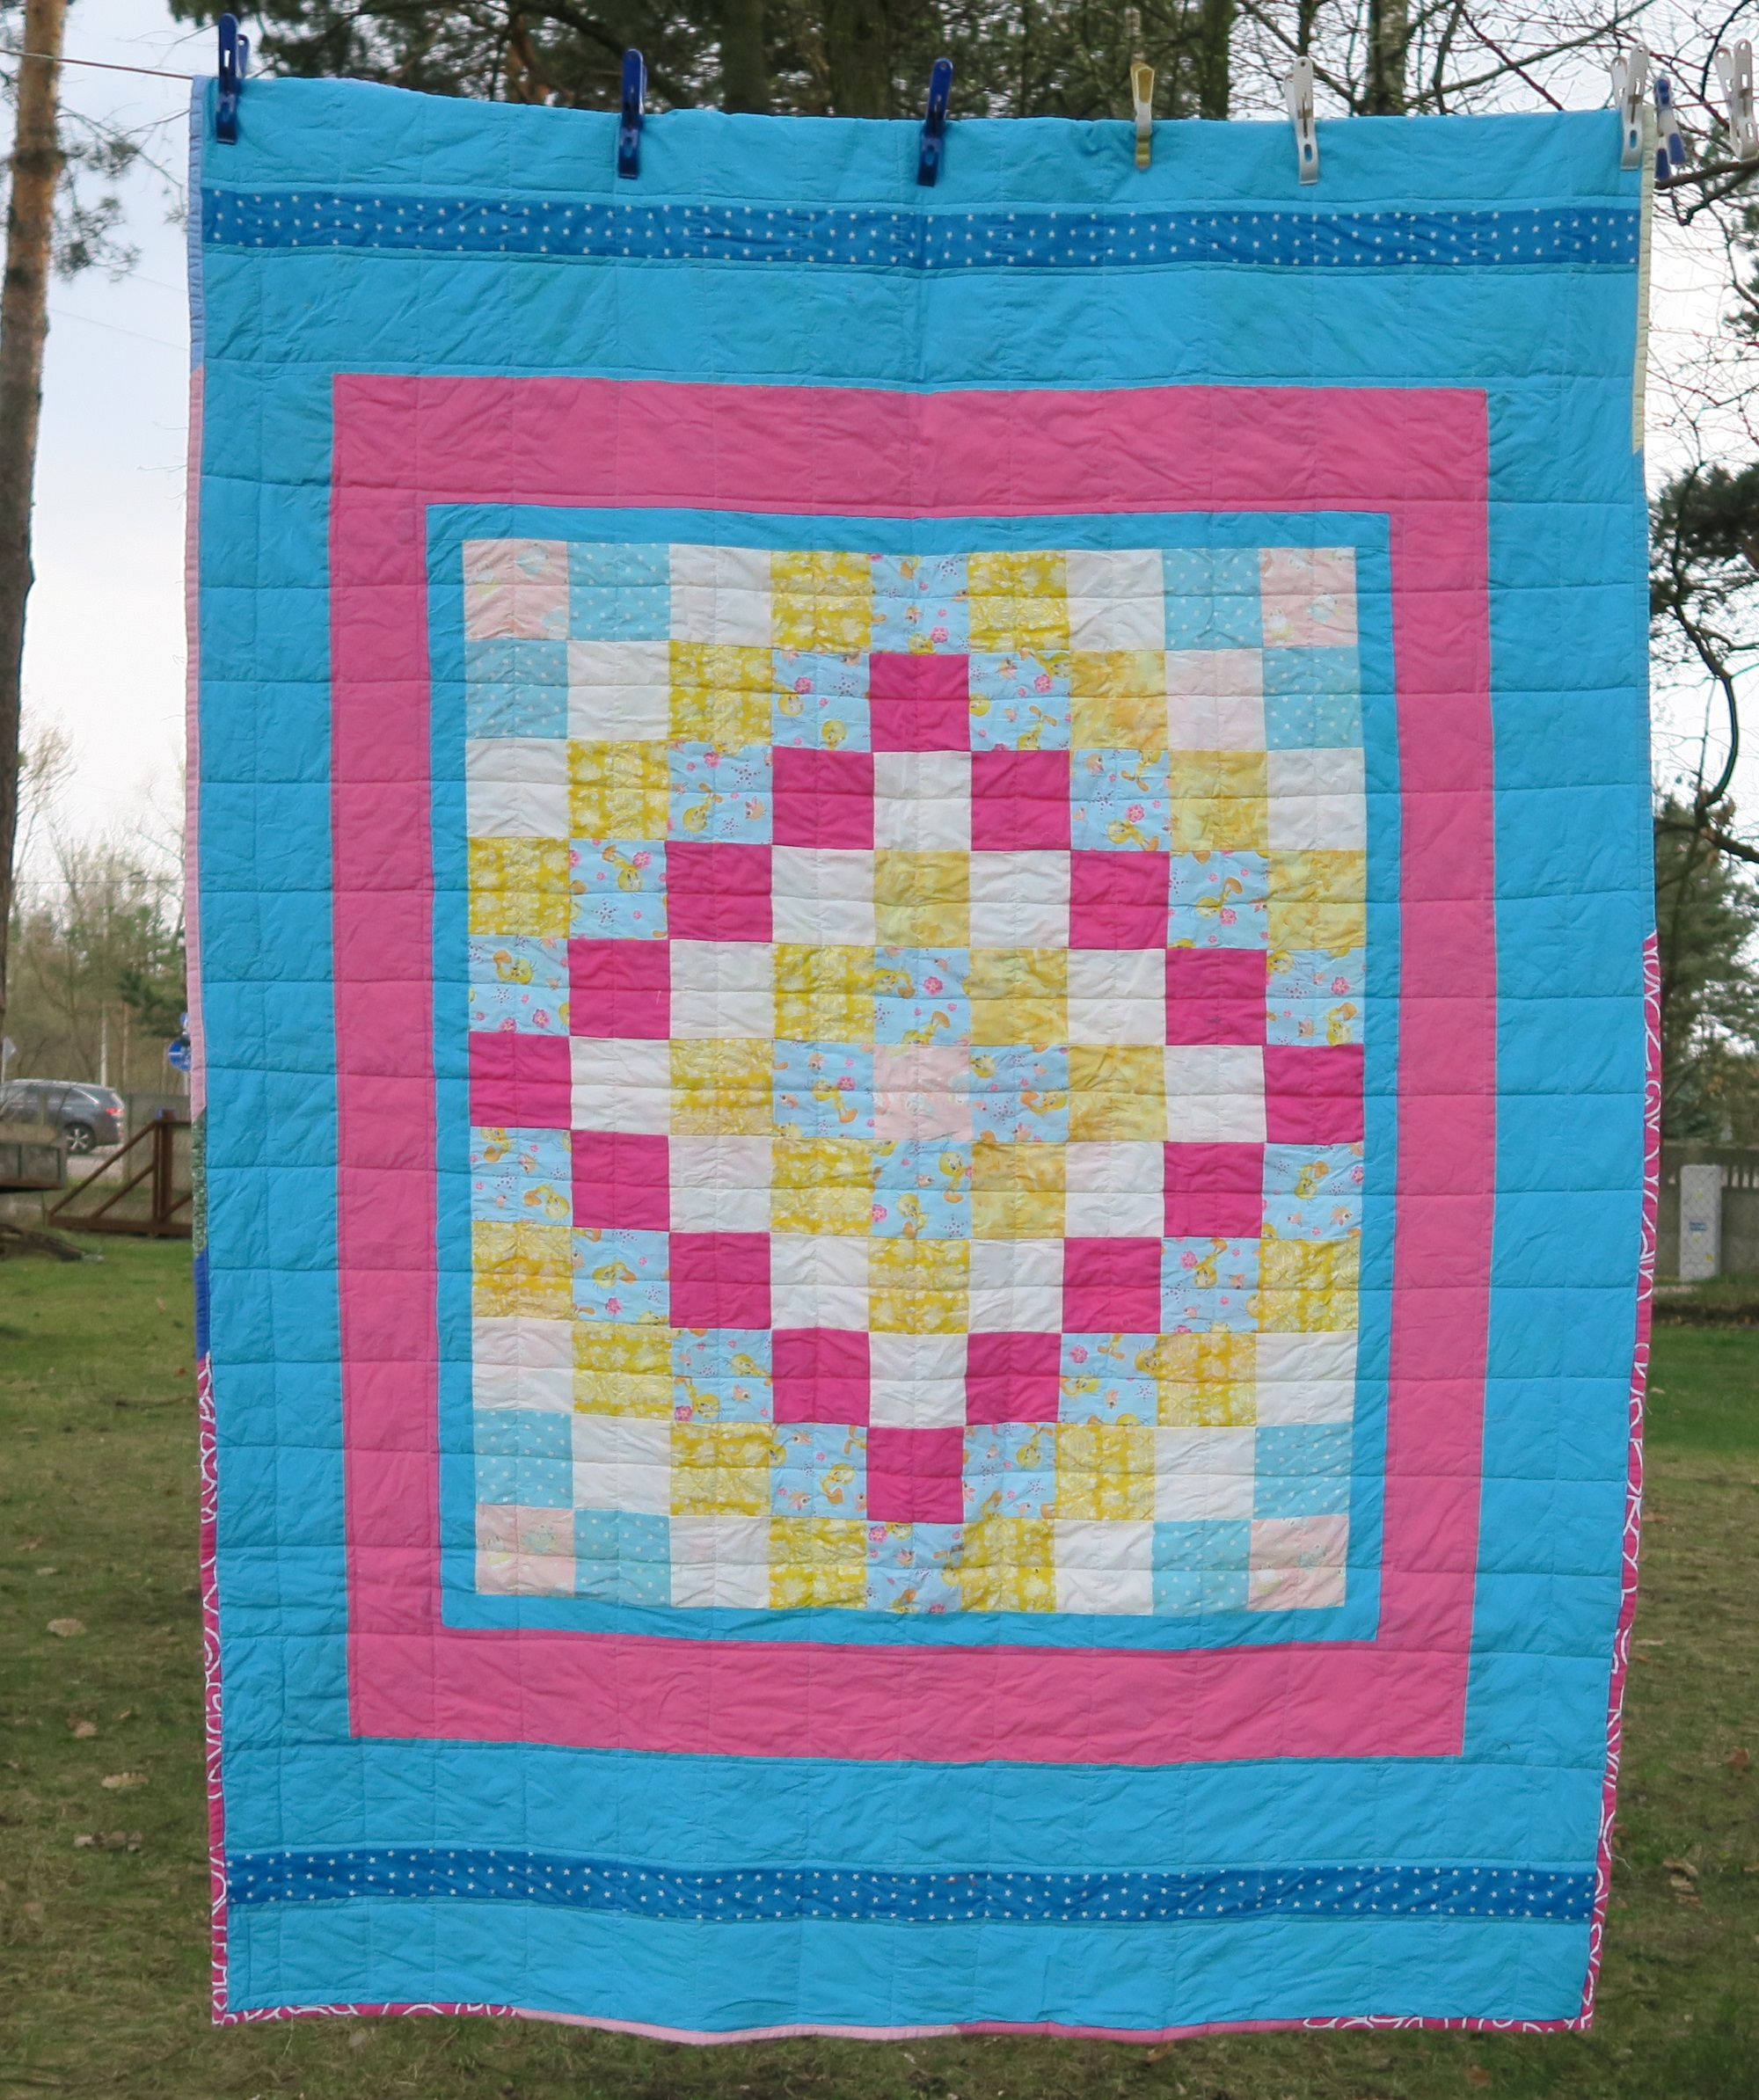 17. Center of the top donated by a friend in AZ. I added borders to it until it became a European twin size.